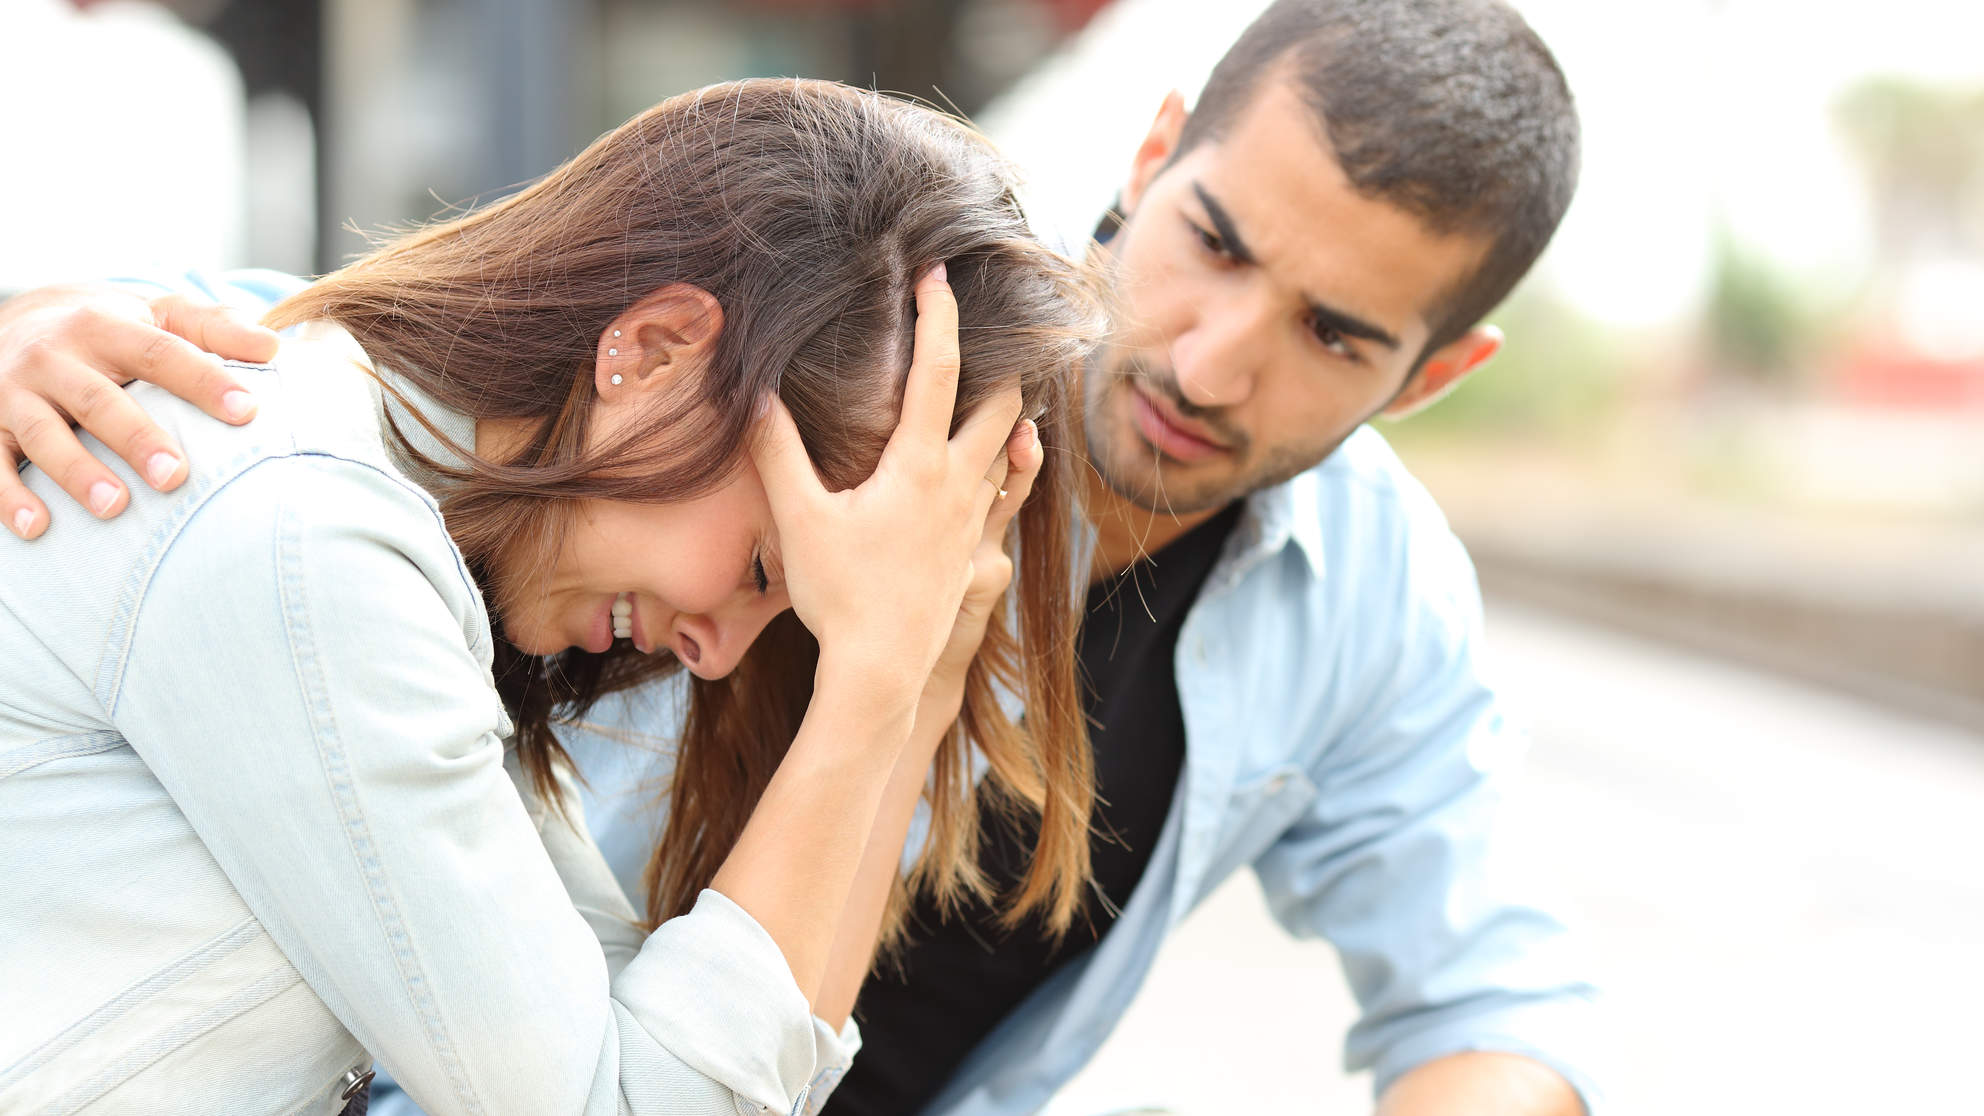 5 Things You Should Never Say to Someone Having a Panic Attack